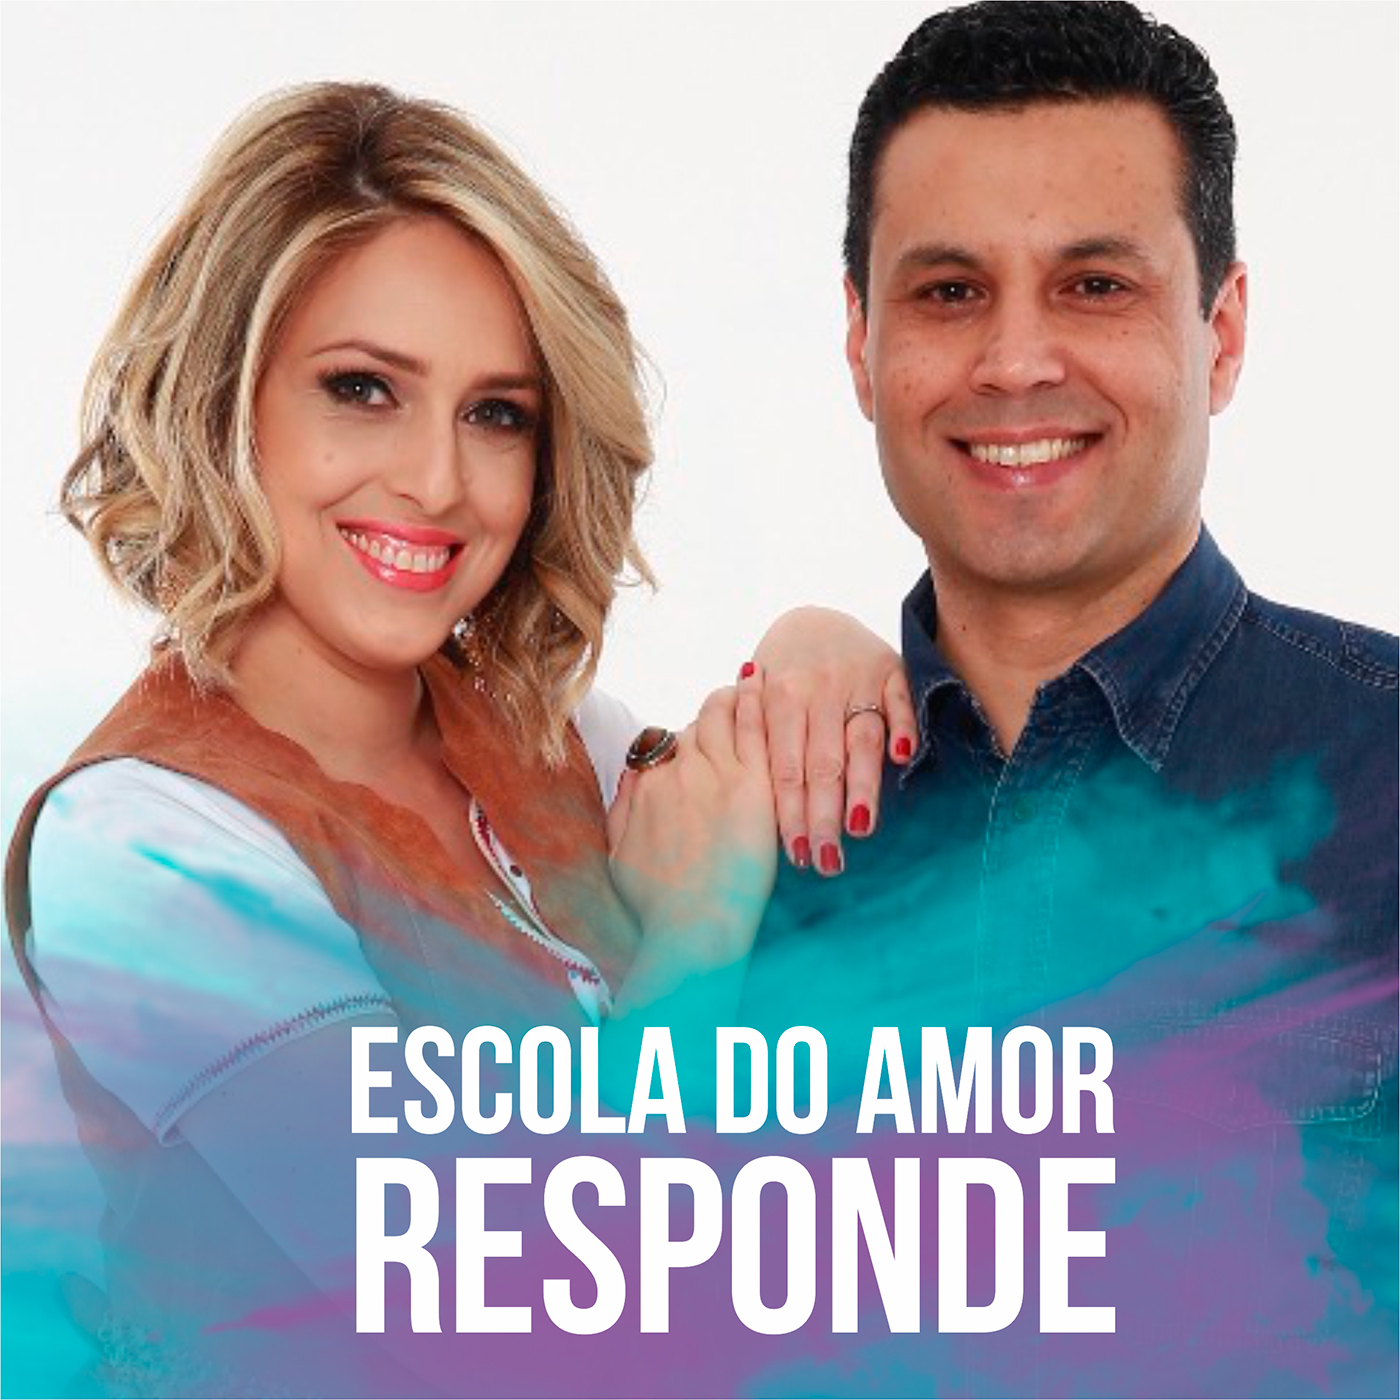 922# Escola do Amor Responde (no ar 24/02/2017)